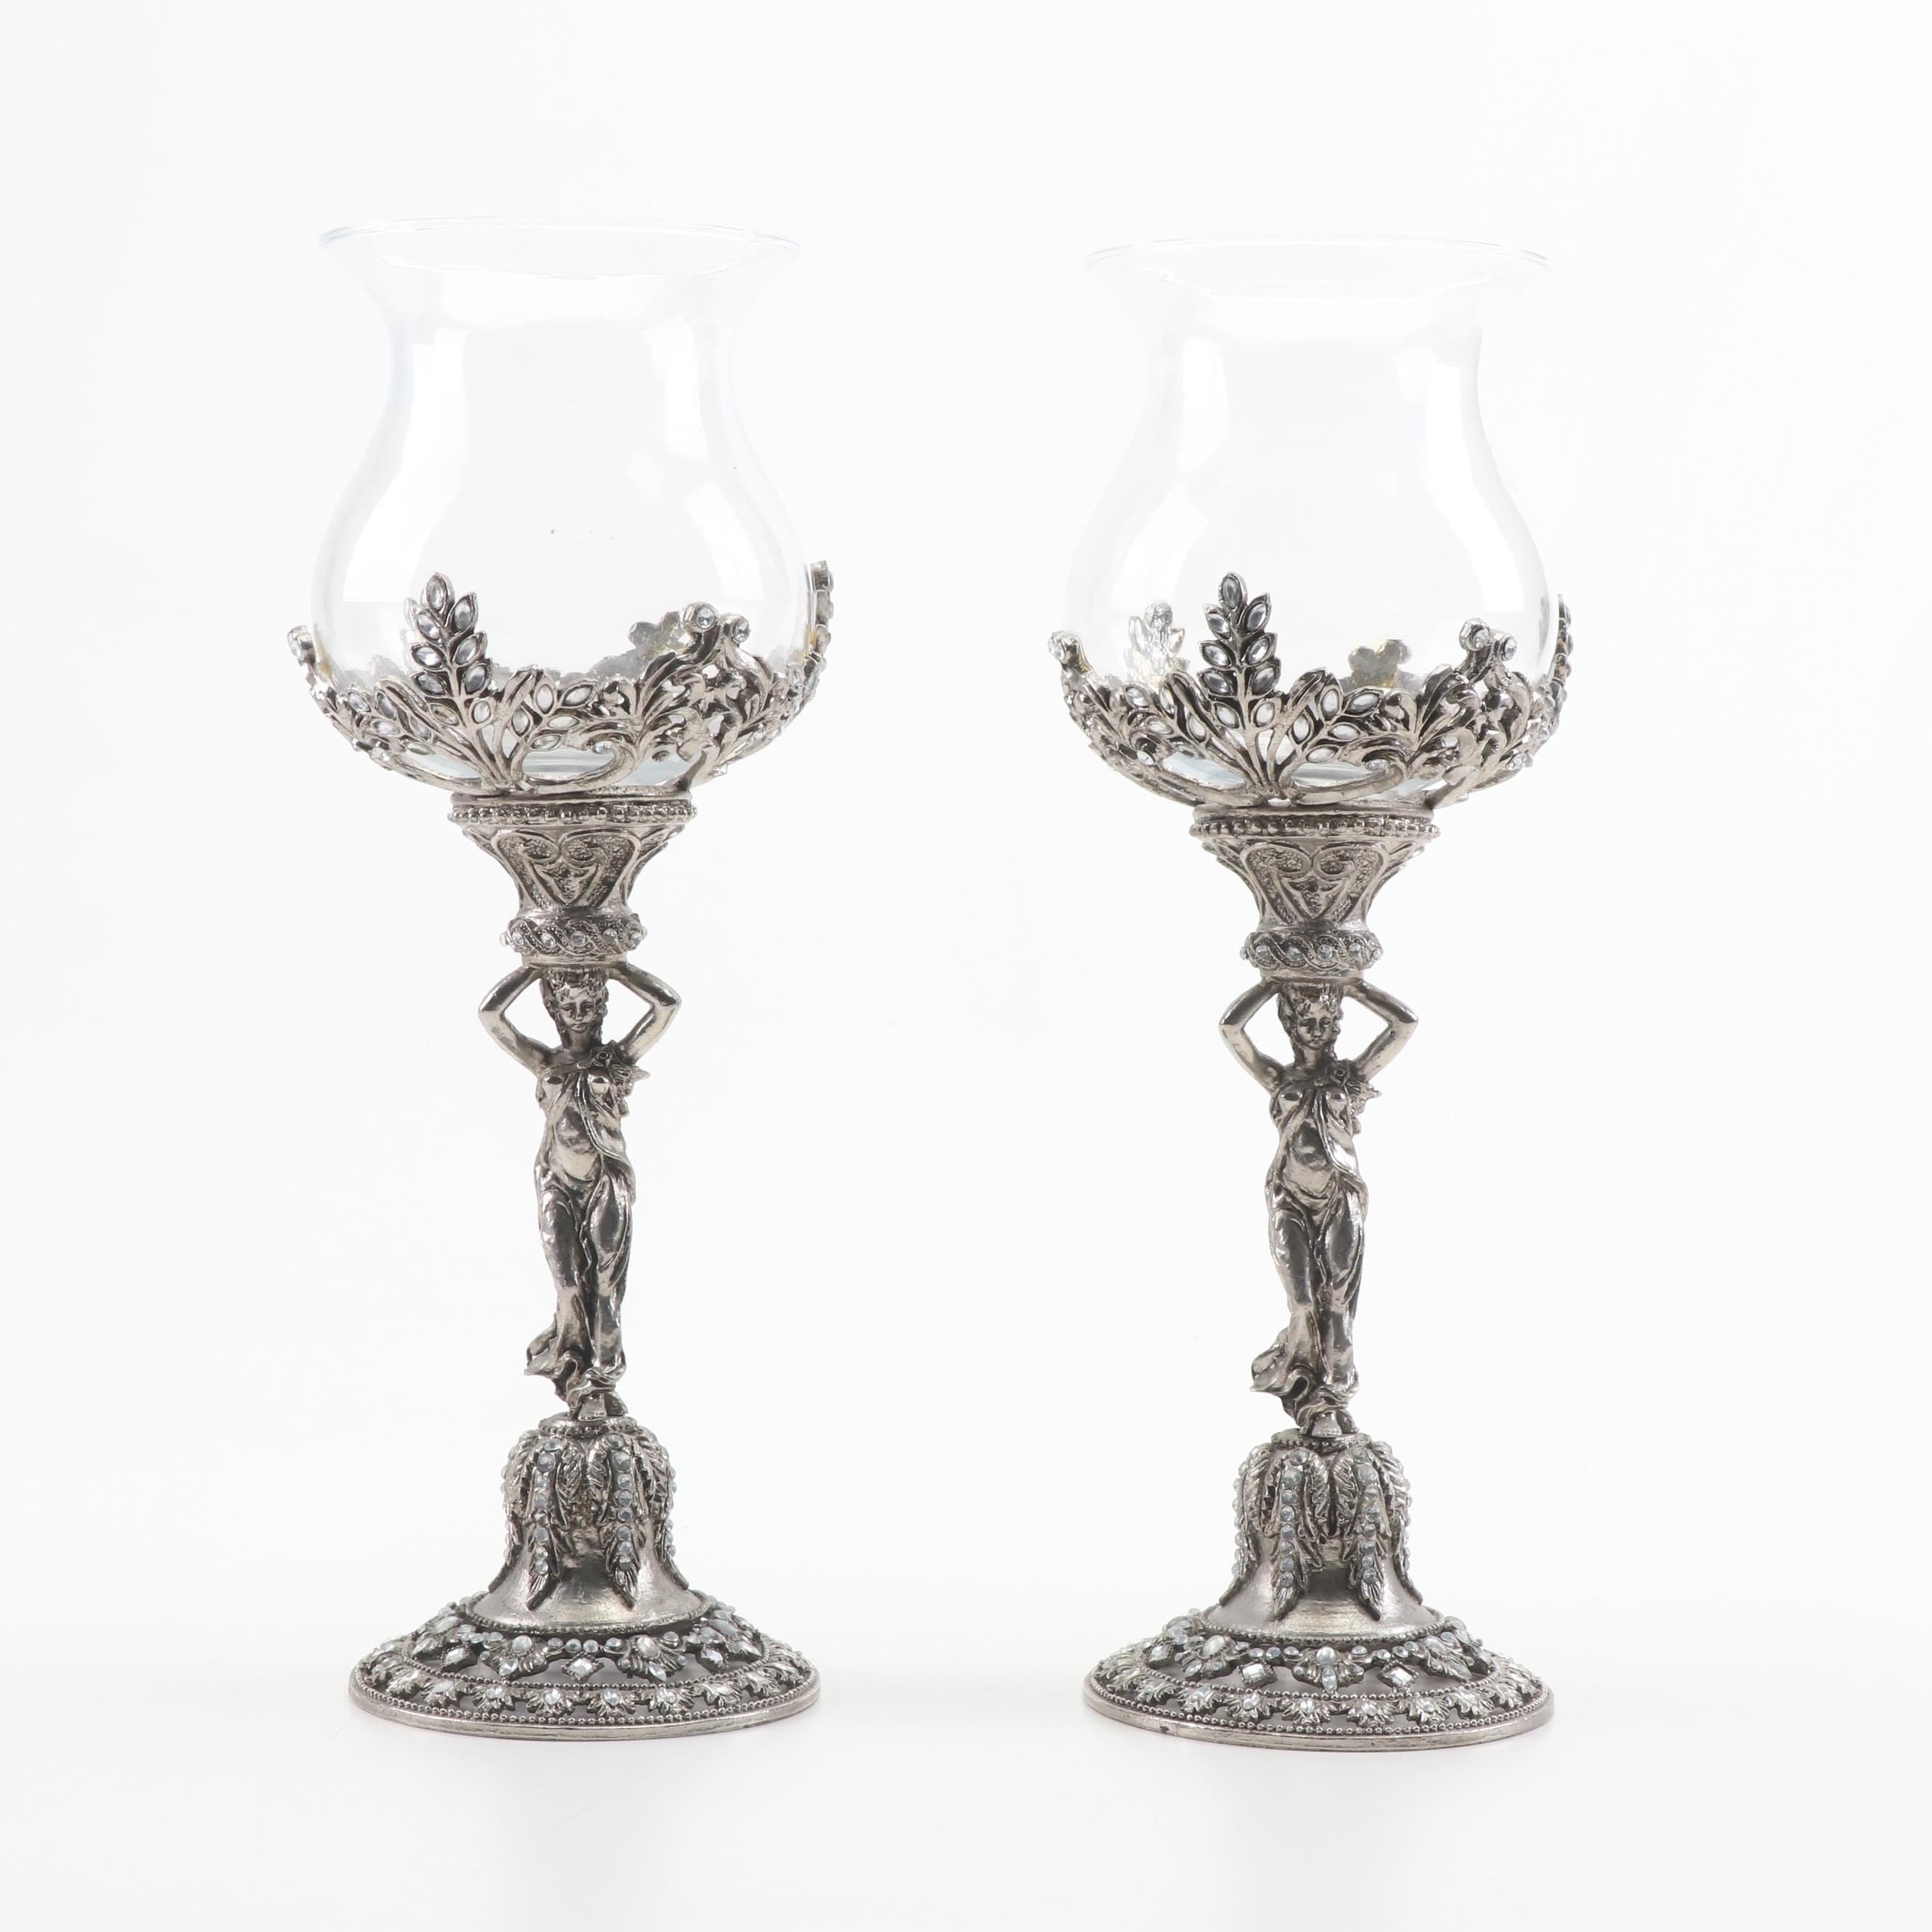 Cast Metal and Glass Figural Votive Candle Holders, Mid to Late 20th Century